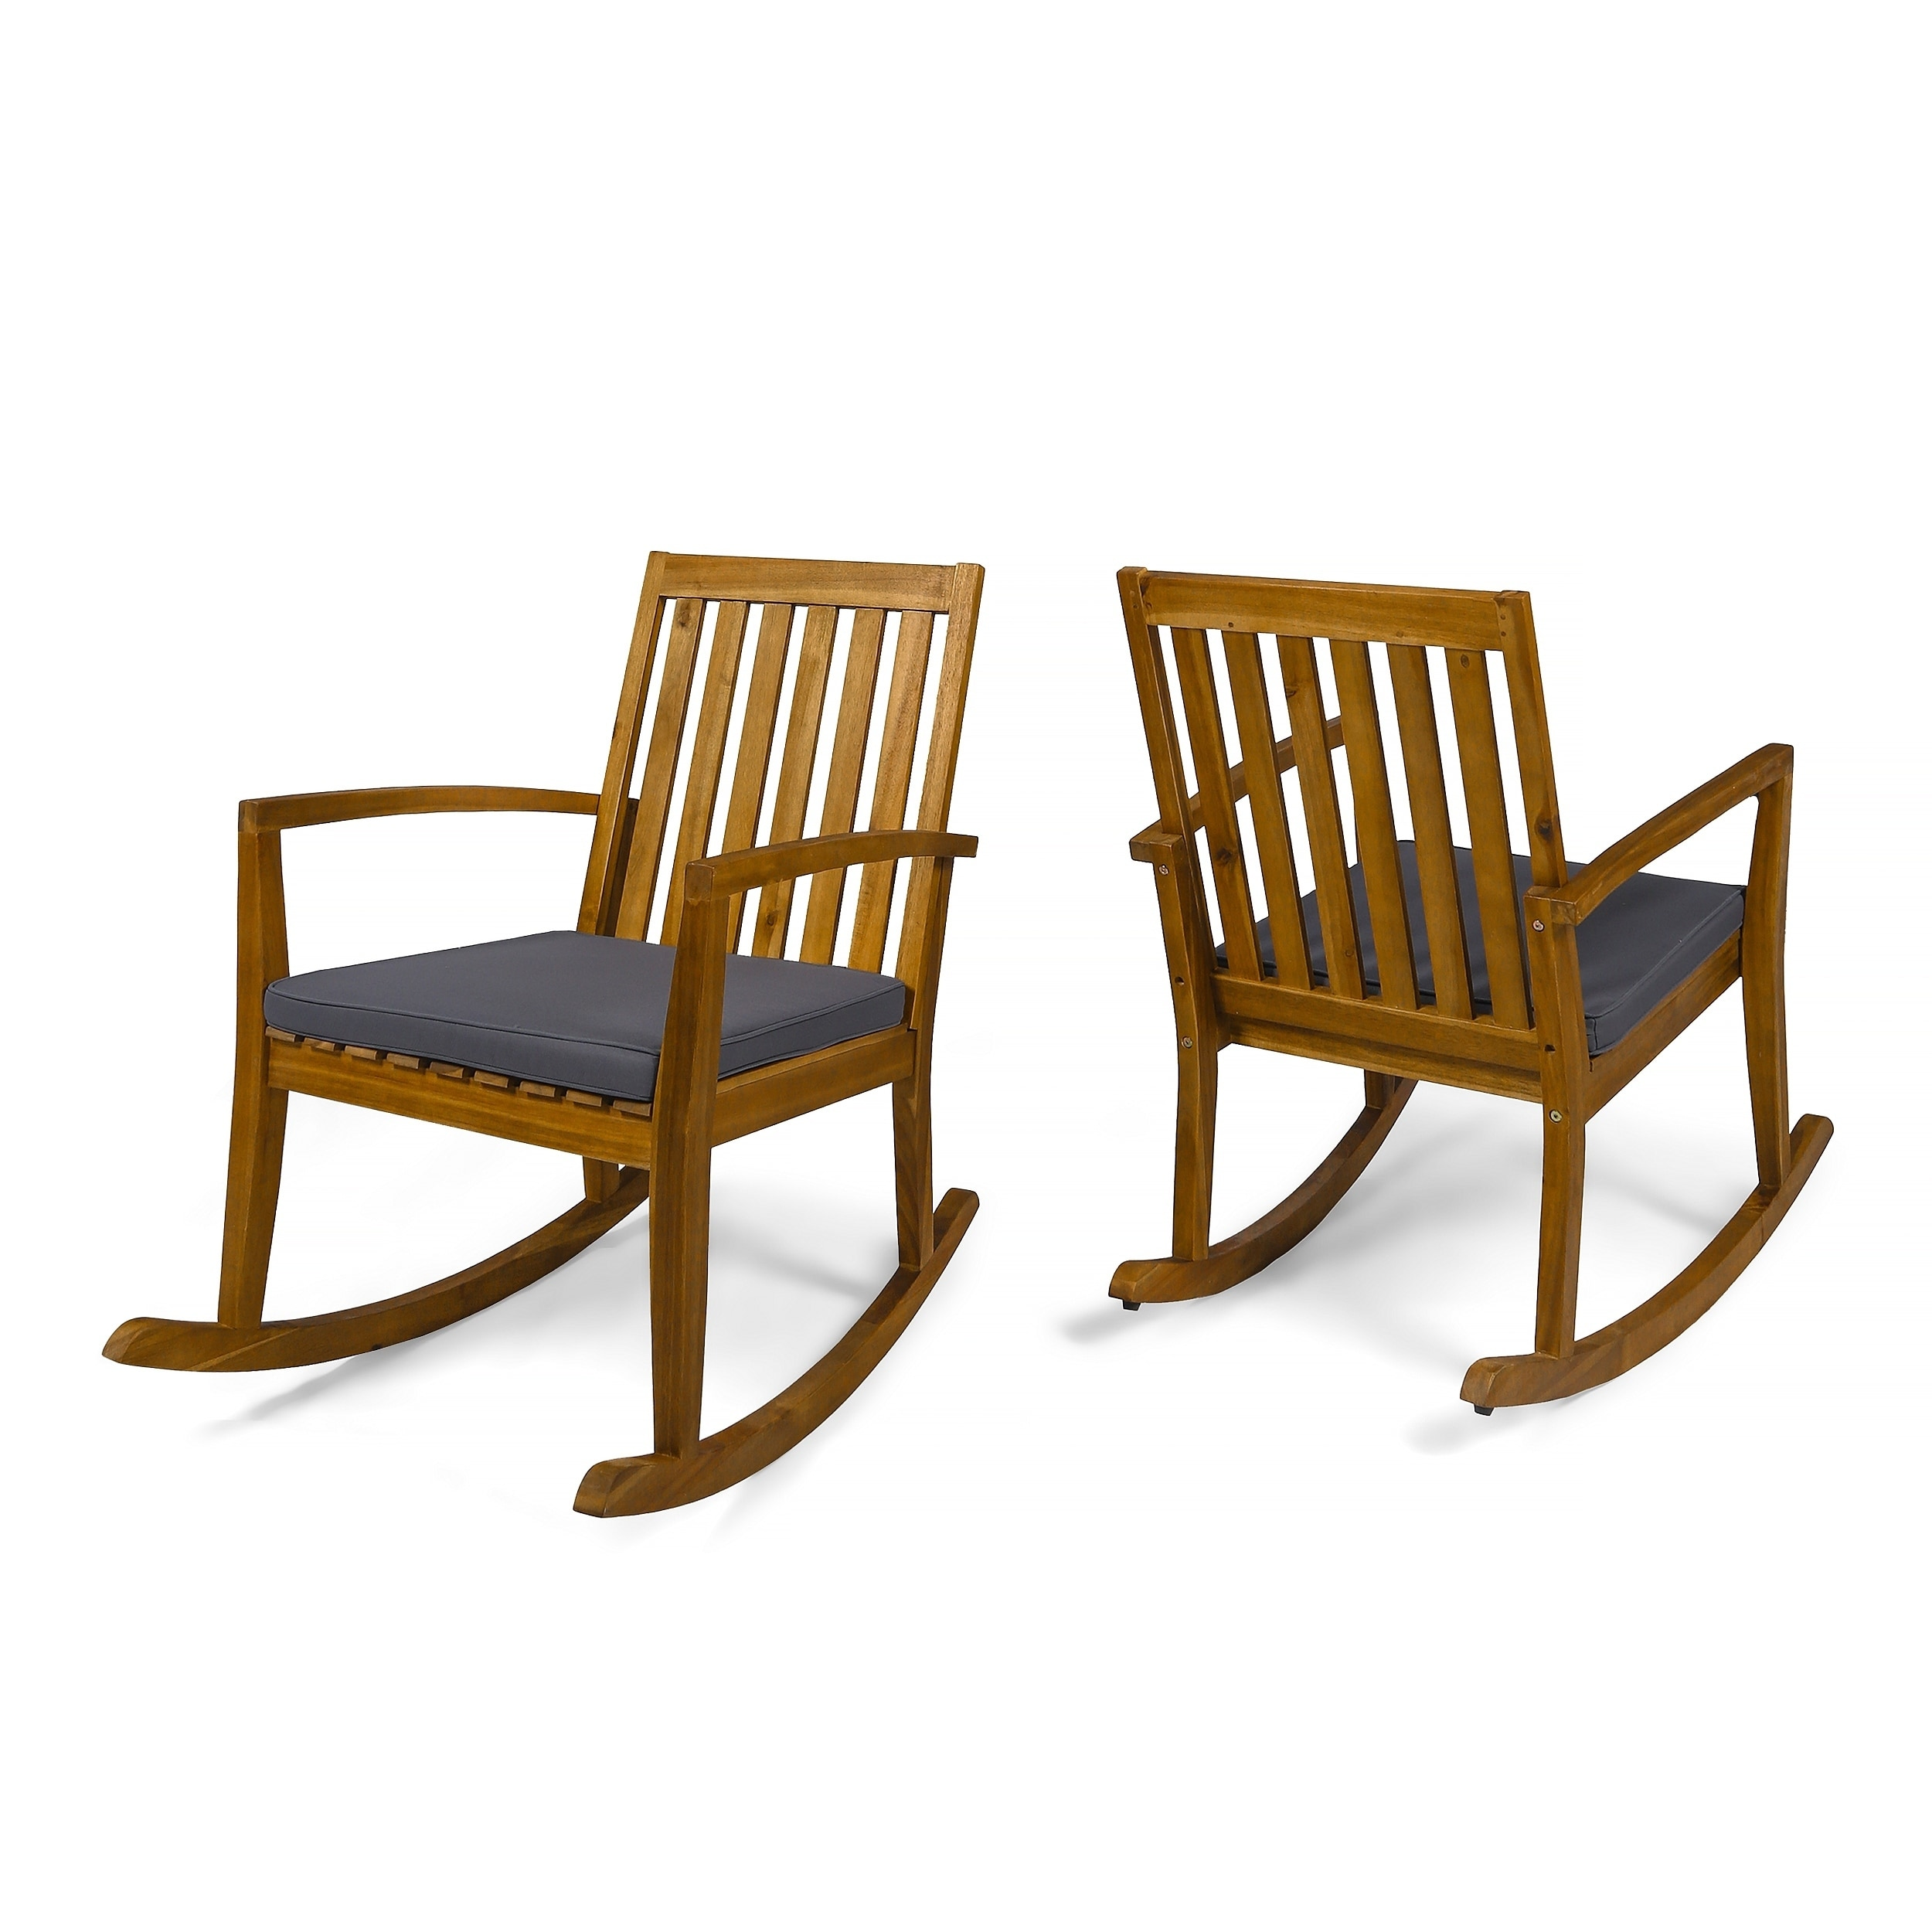 Christopher Knight Home Montrose Traditional Outdoor Acacia Wood Rocking Chairs (Set of 2) by